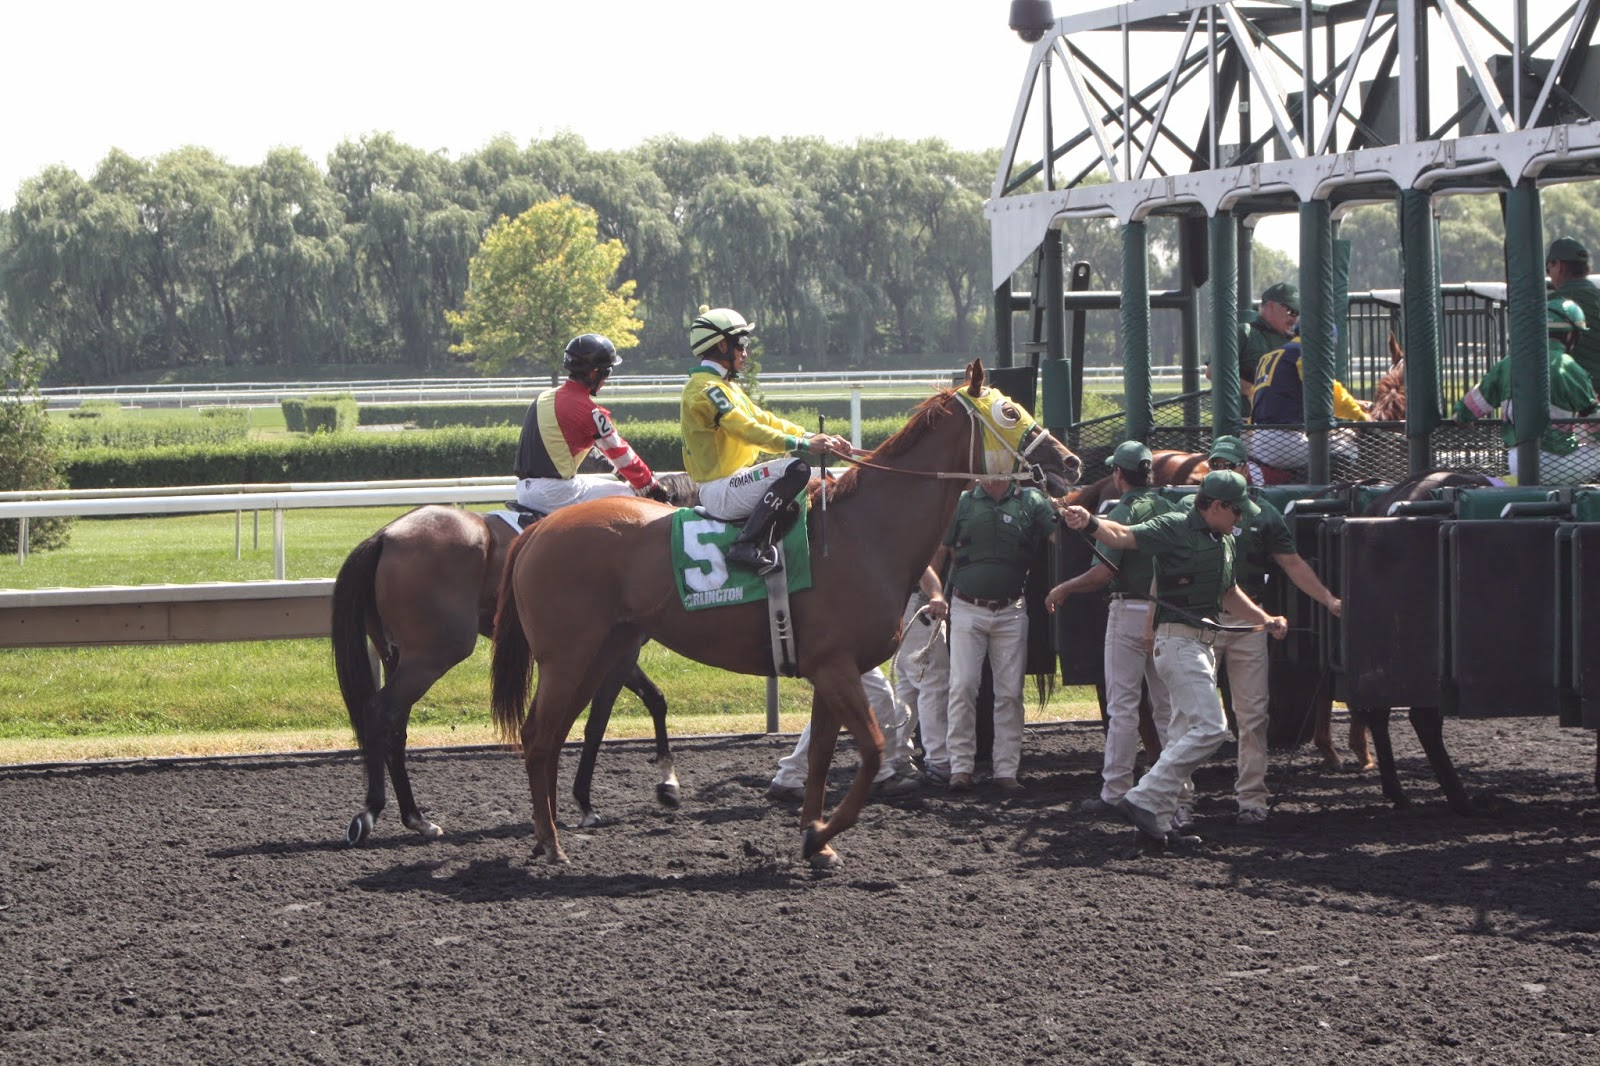 Horses at Gate of Arlington Park